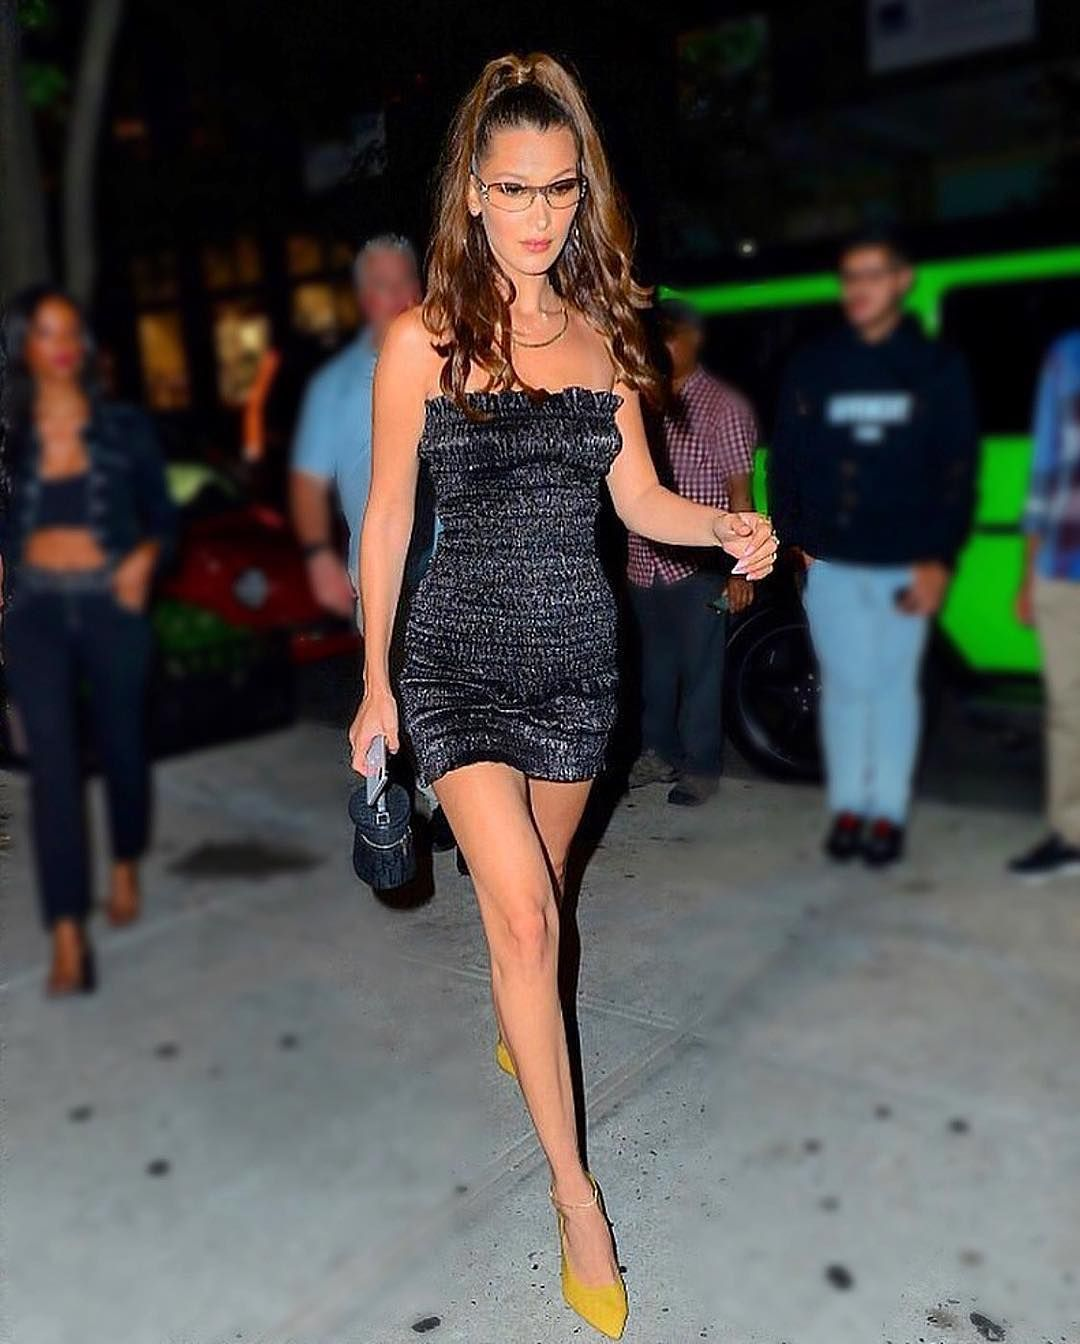 c526e6dc4 #ISpyBNY: Bella Hadid strutting down the streets in an exclusive-to-Barneys  Area dress. Tap to shop this black, tube dress now on Barneys.com.